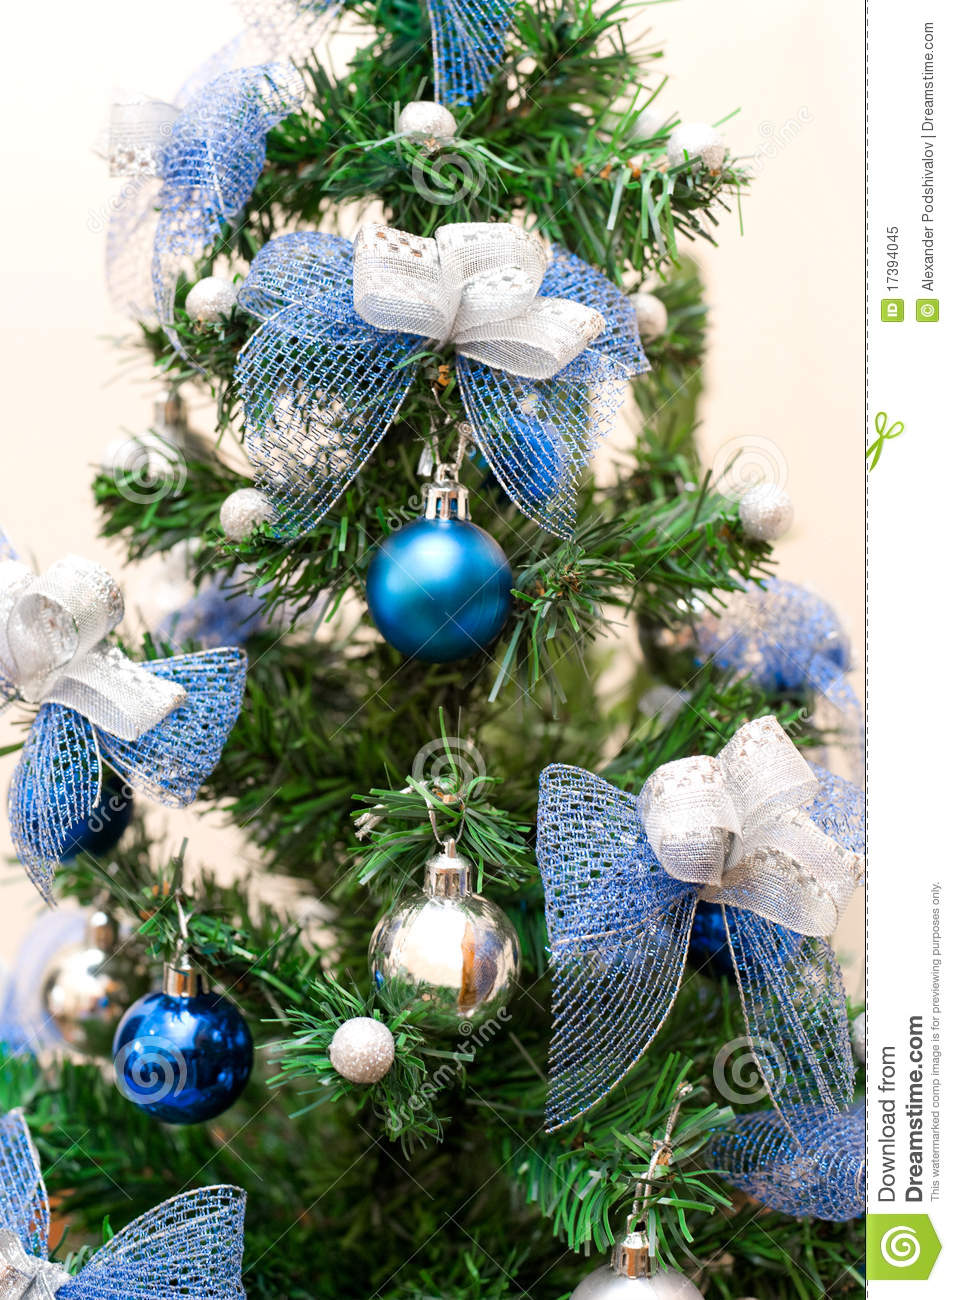 Red christmas tree decorations - Silver And Blue Christmas Tree Christmas Tree With Blue And